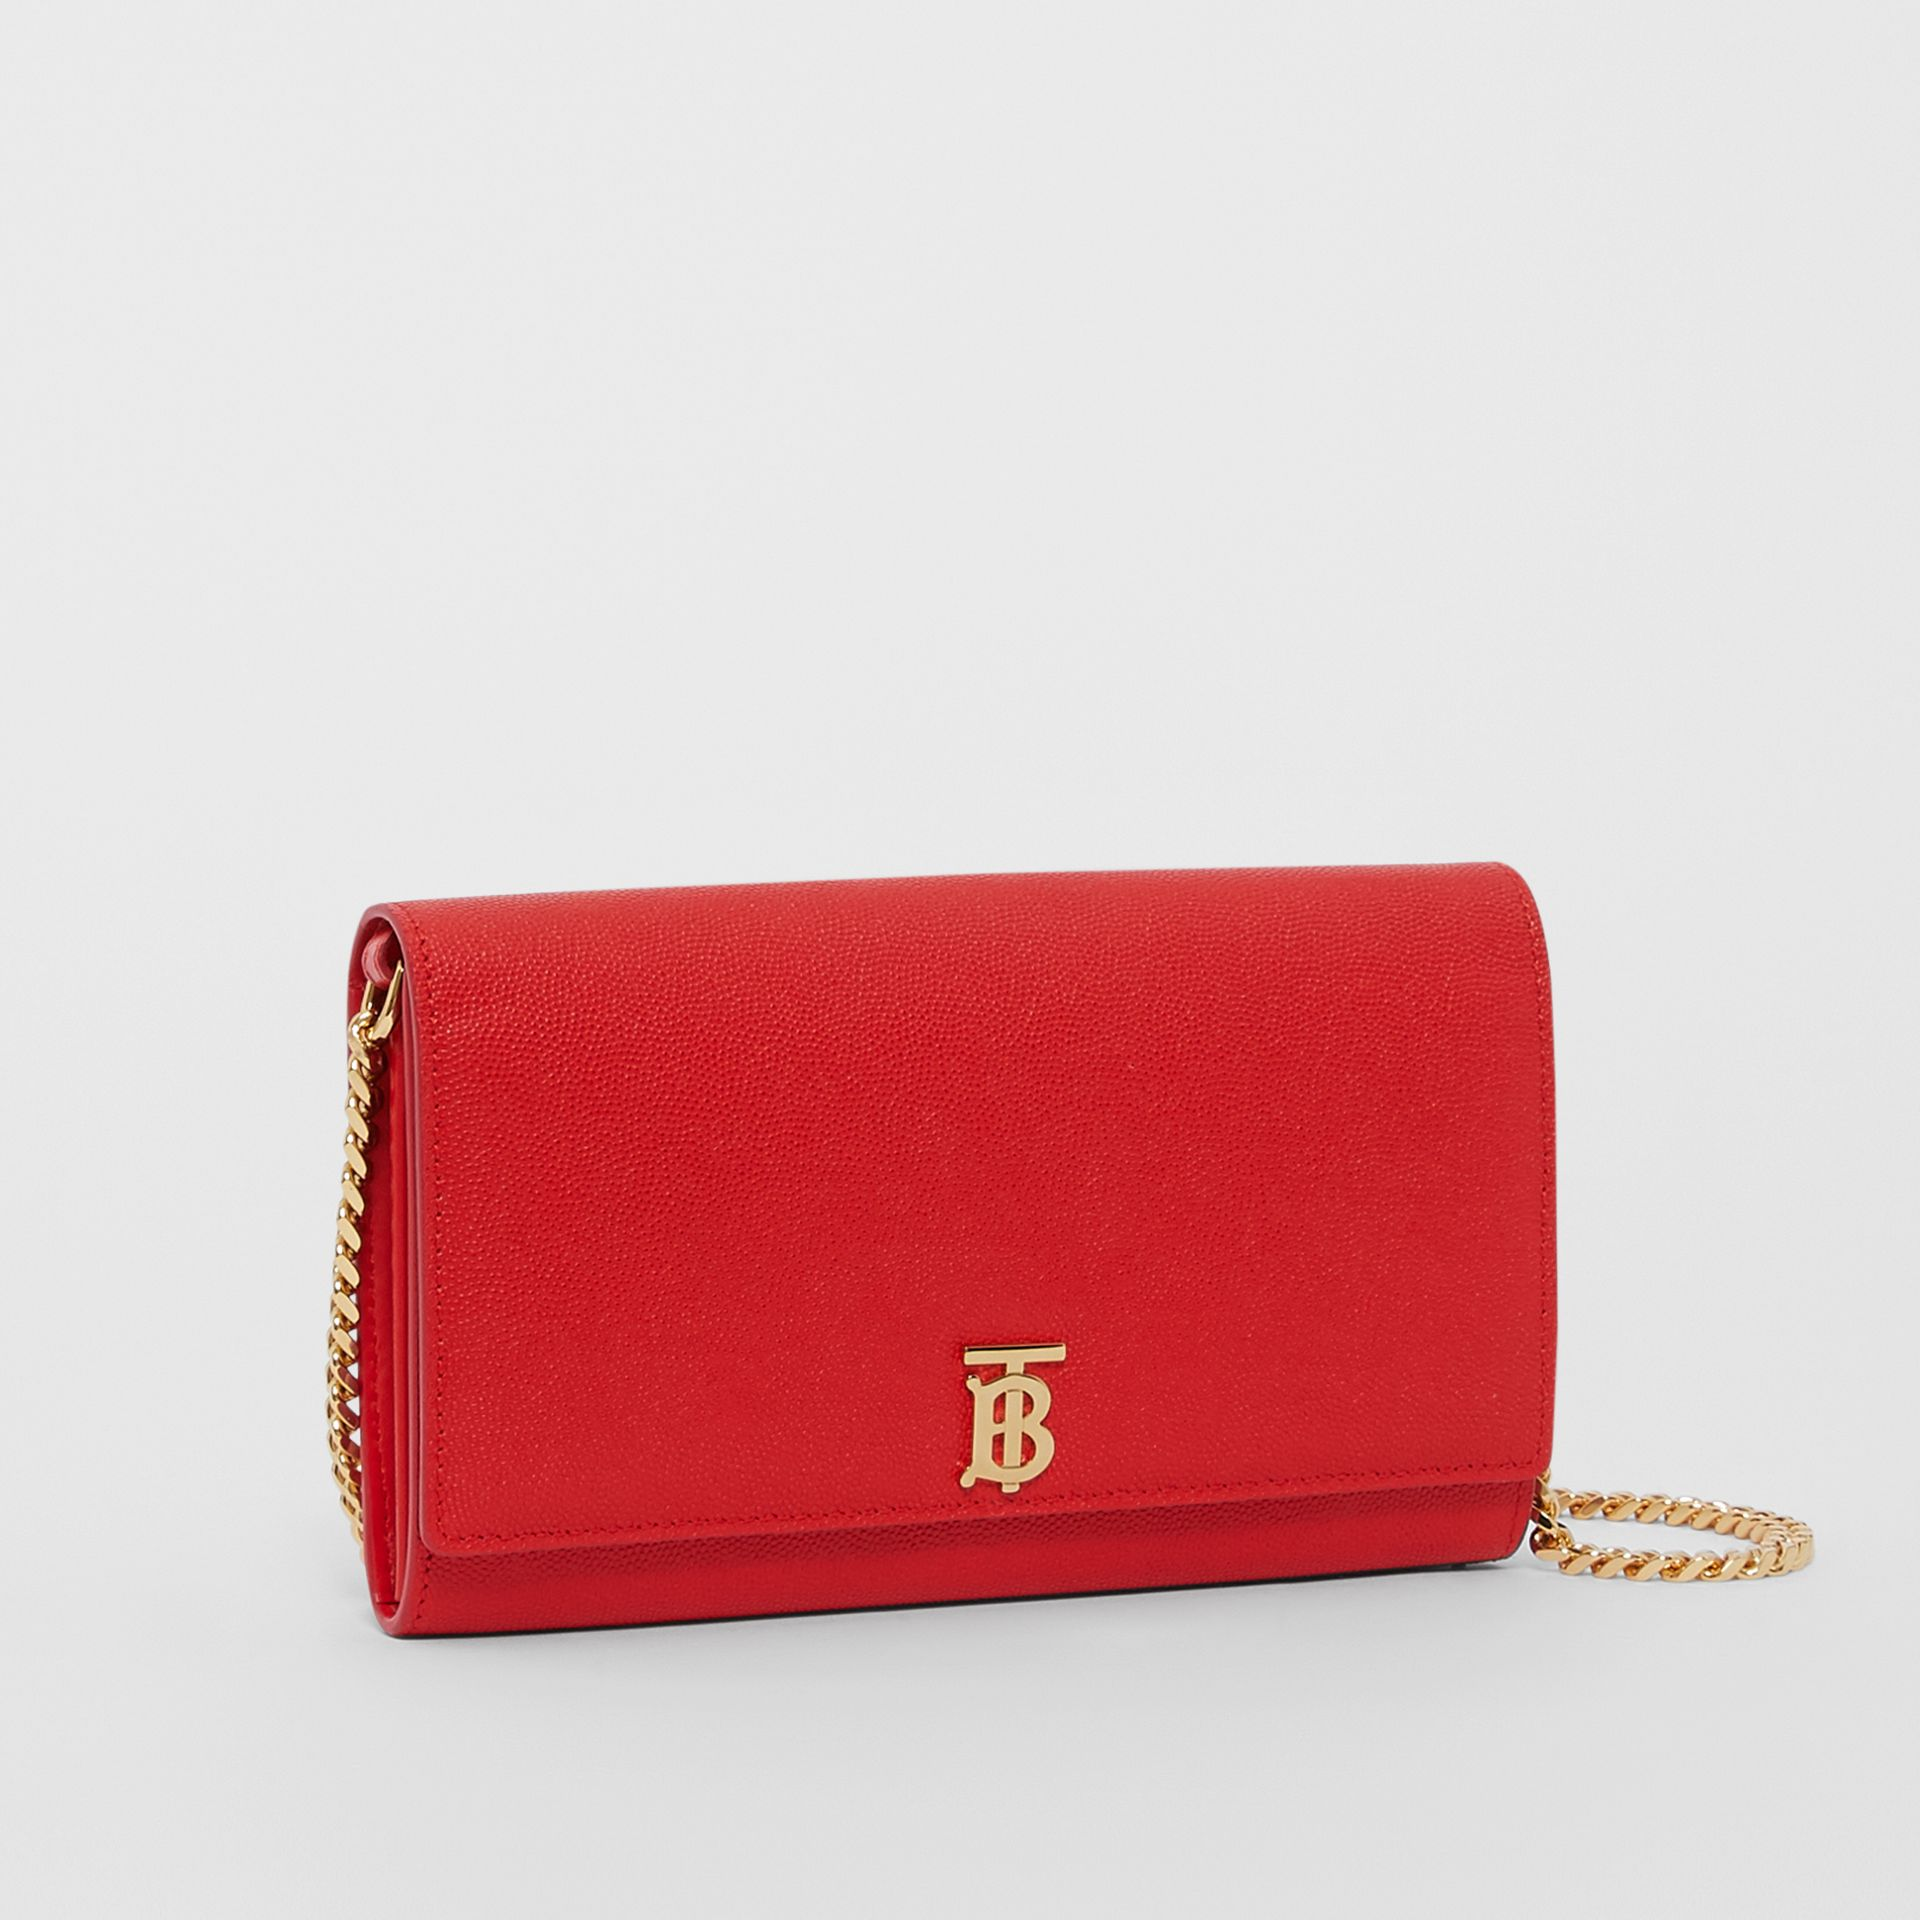 Portefeuille en cuir Monogram avec sangle amovible (Rouge Vif) - Femme | Burberry - photo de la galerie 4